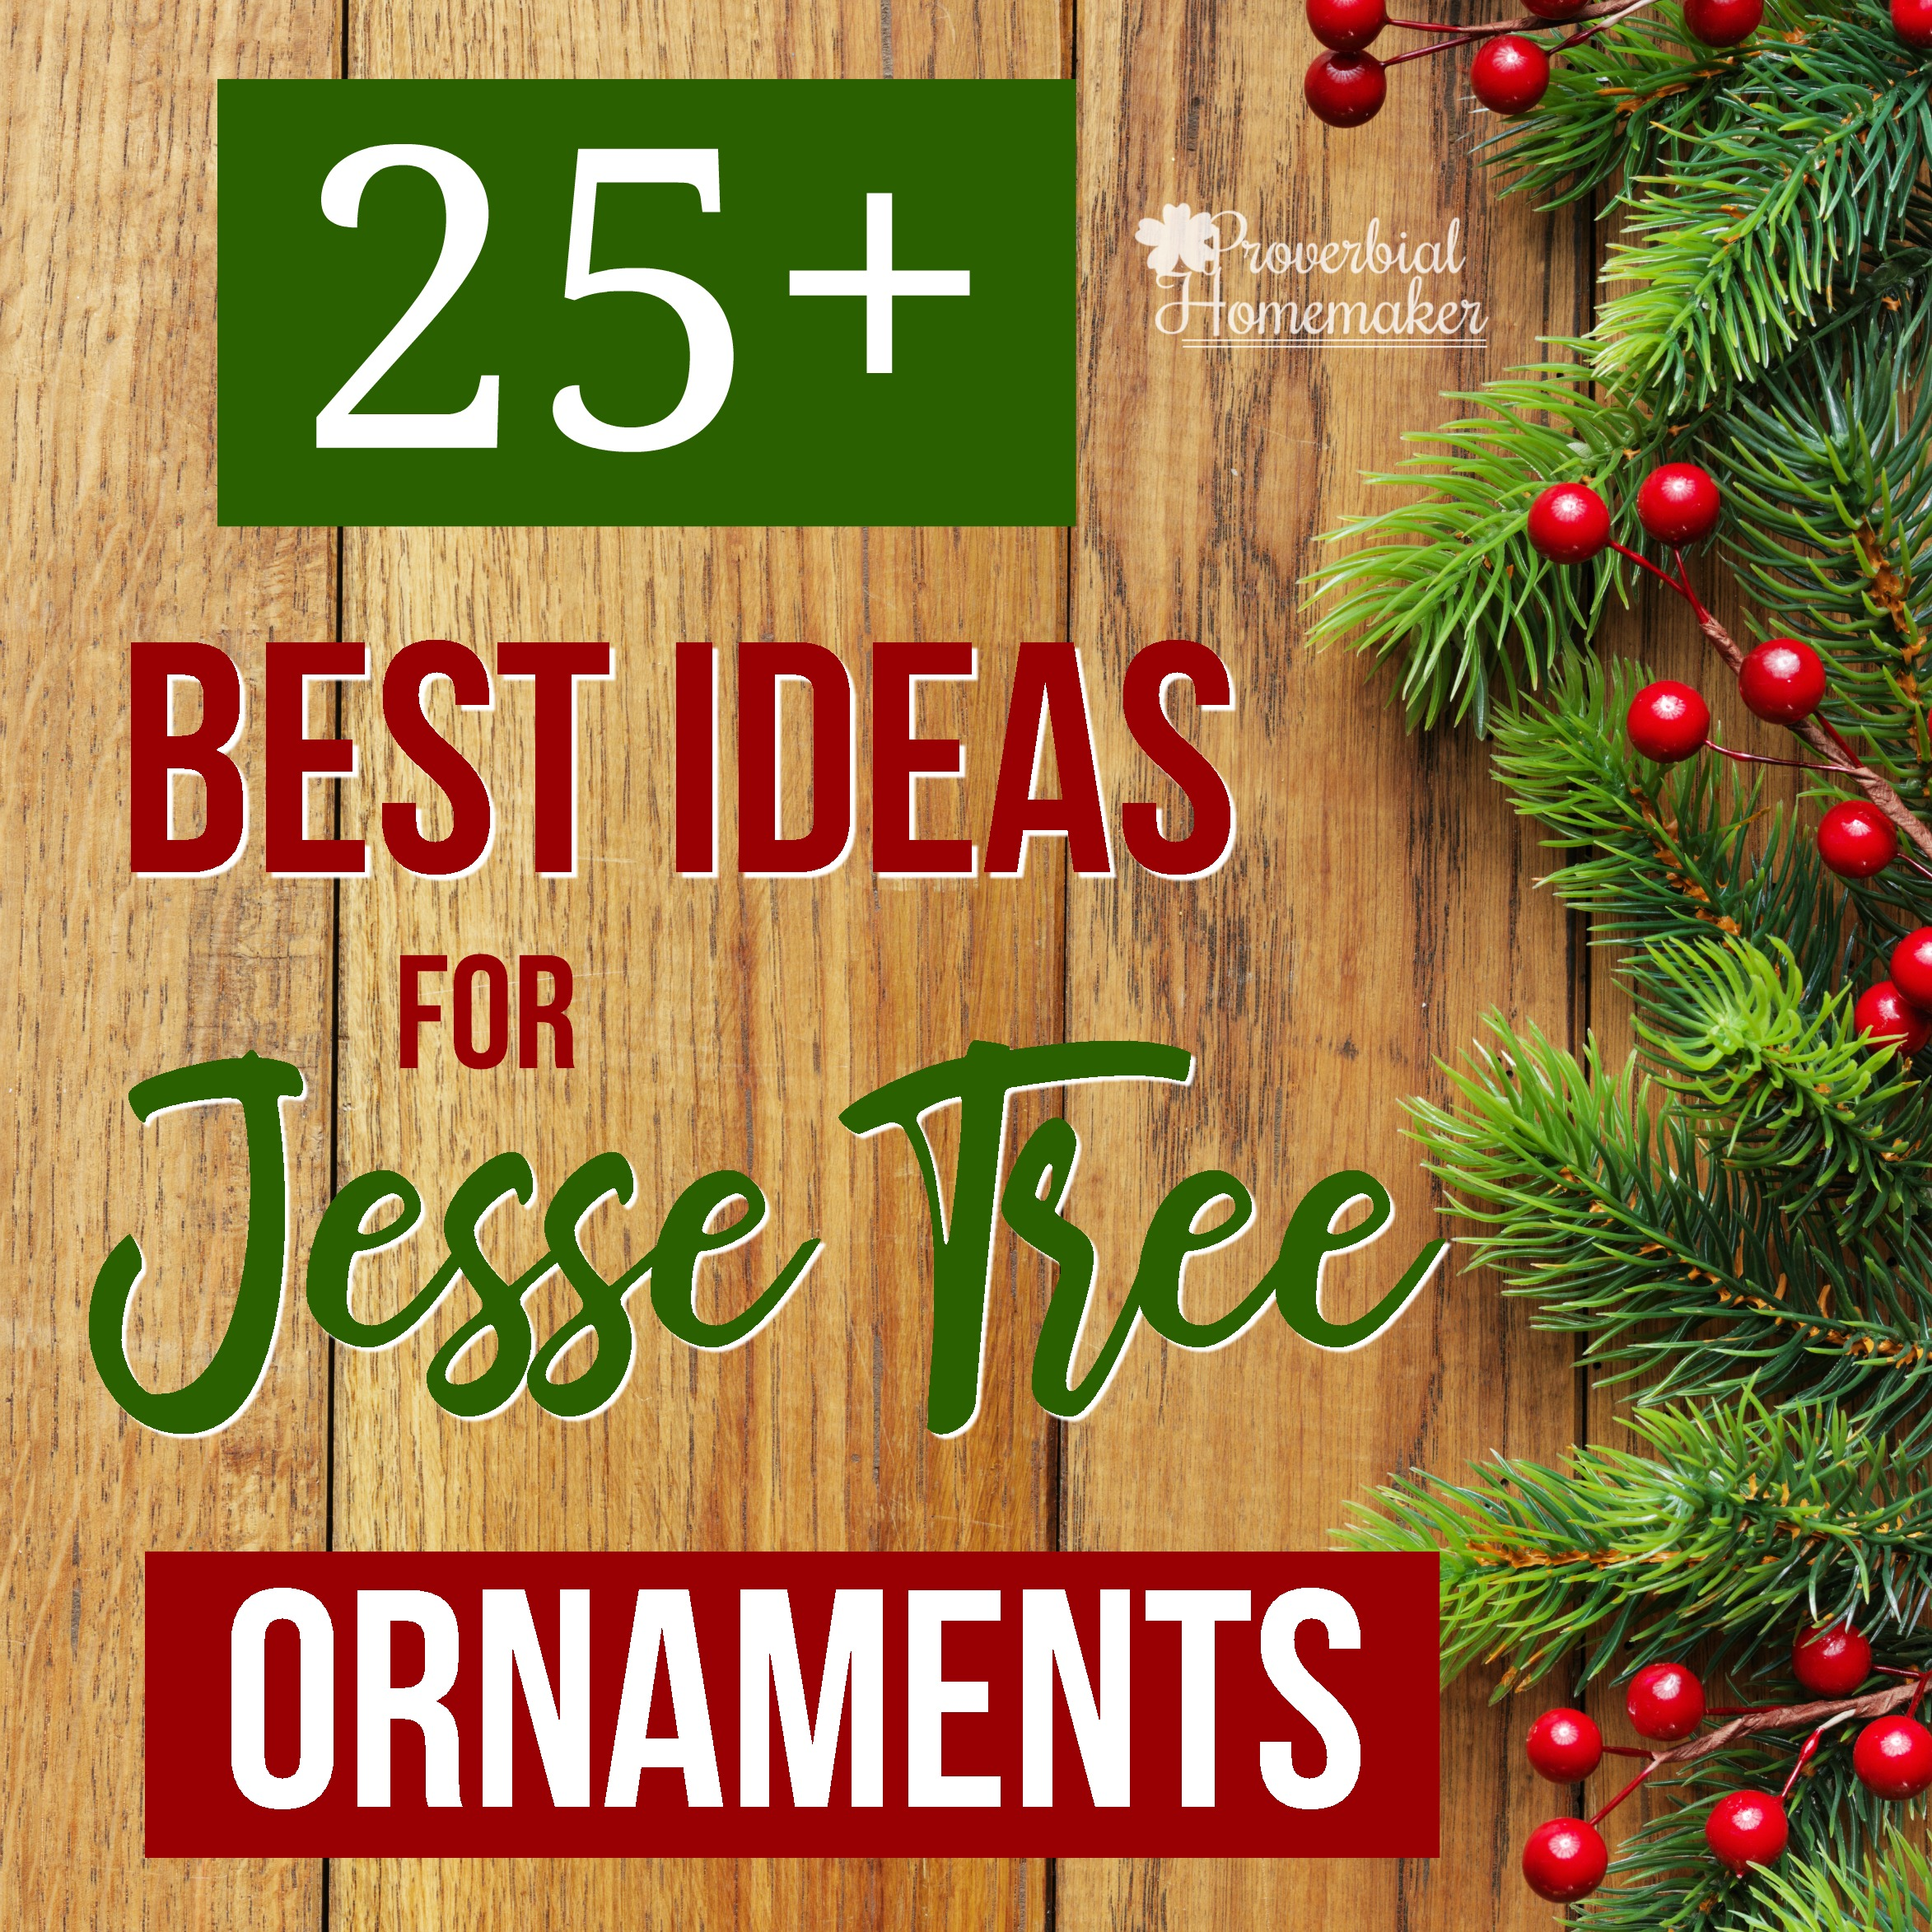 image regarding Jesse Tree Symbols Printable named 25+ Suitable Plans for Do it yourself Jesse Tree Ornaments - Proverbial